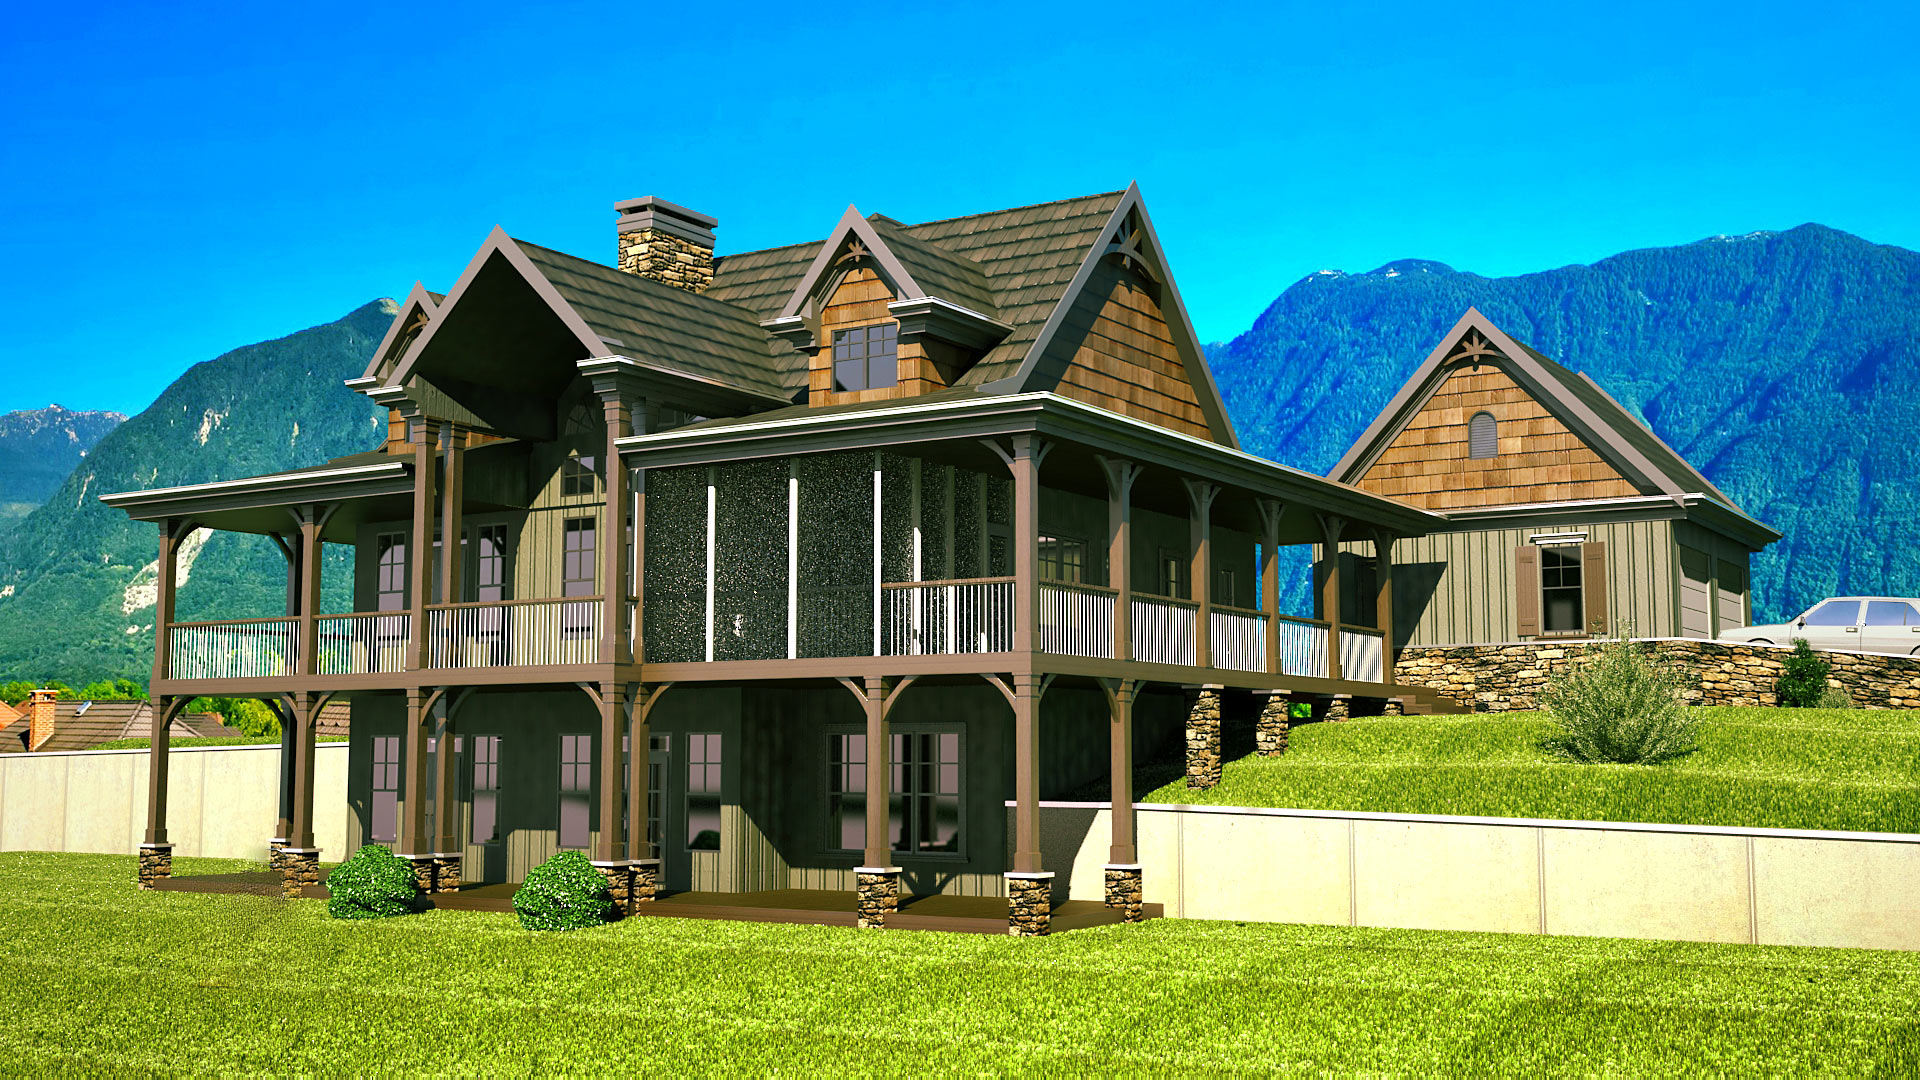 Best of porch house plans house floor ideas for Rustic house plans with wrap around porch